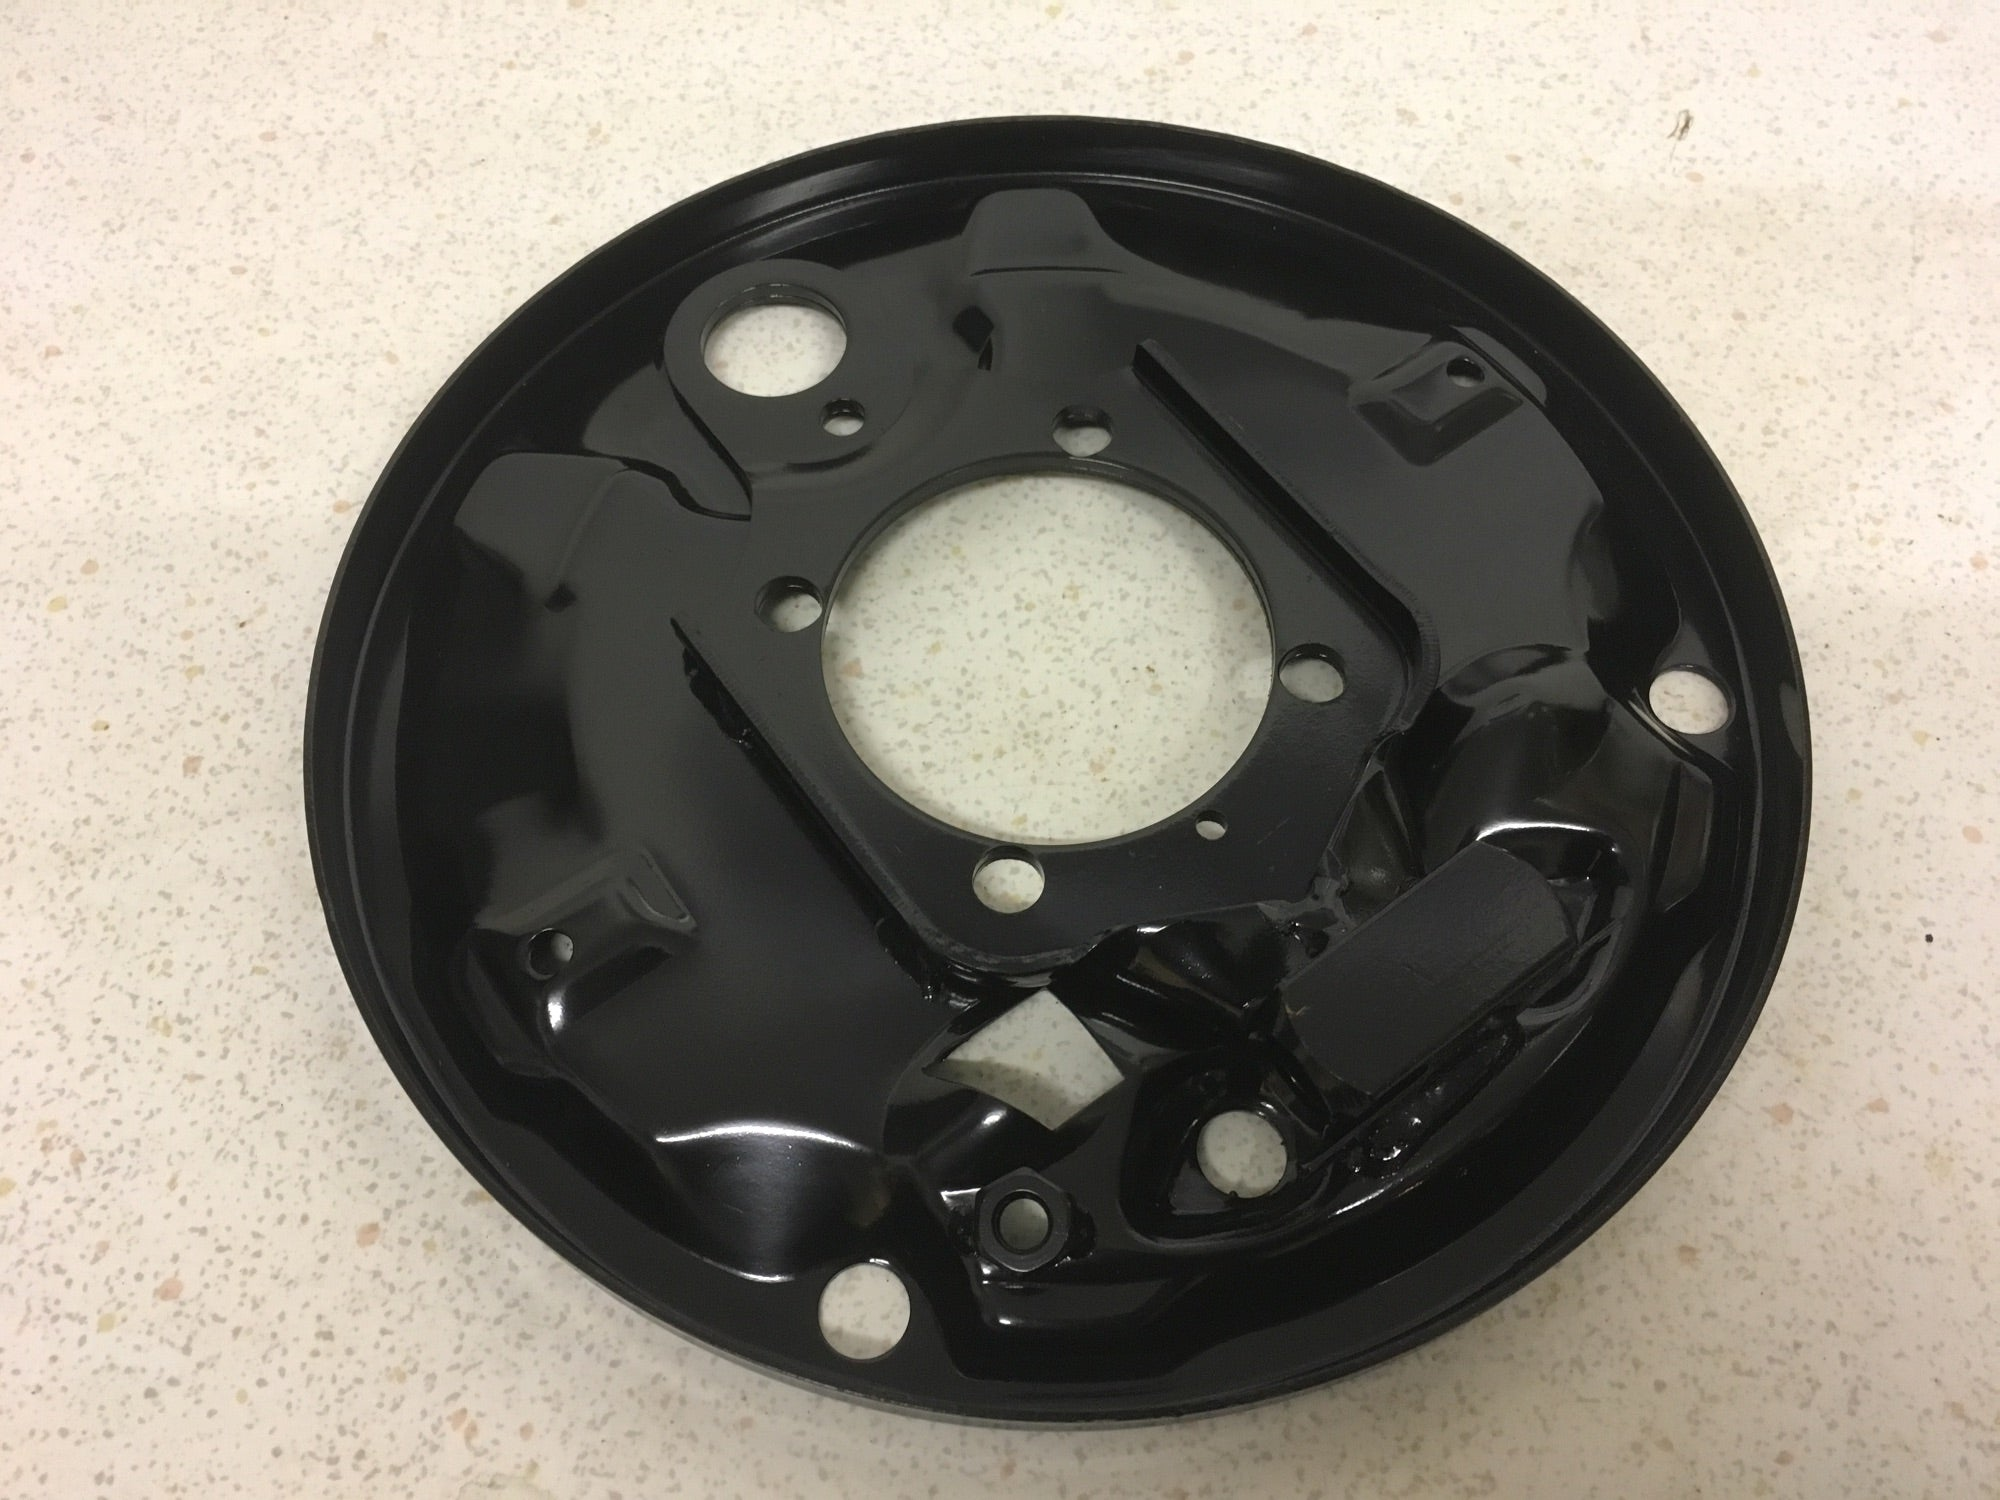 Porsche 924 rear brake backing plate (4 stud 2.0 car only) RIGHT 113 609 440 - Woolies Workshop - Porsche 924 944 spares